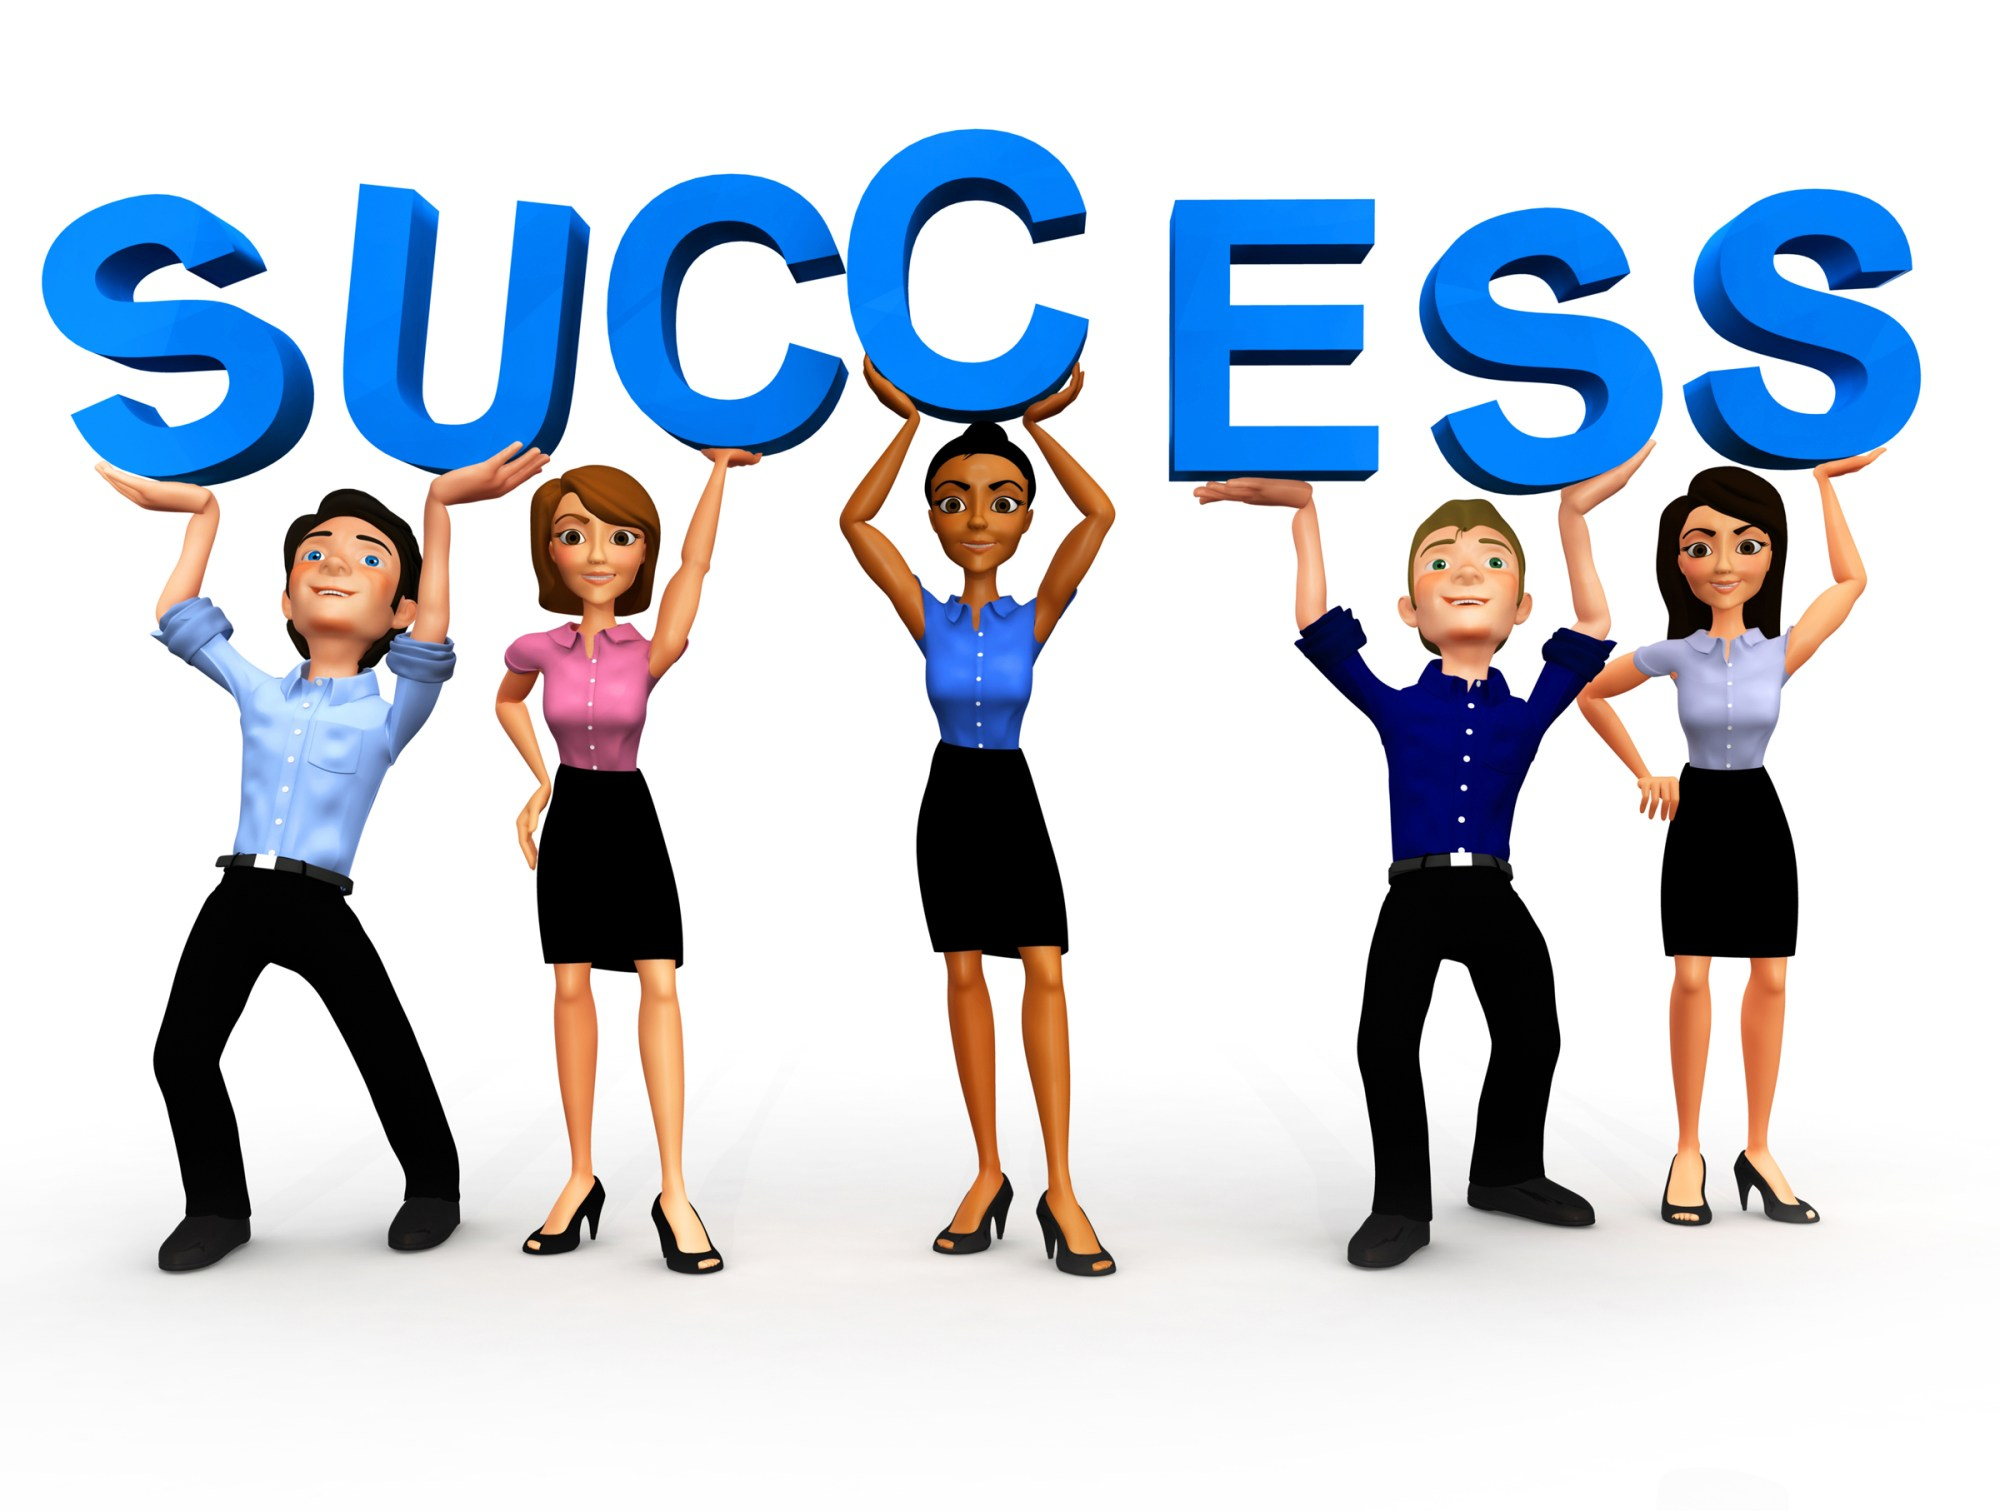 hight resolution of people standing clipart clipart library free clipart images